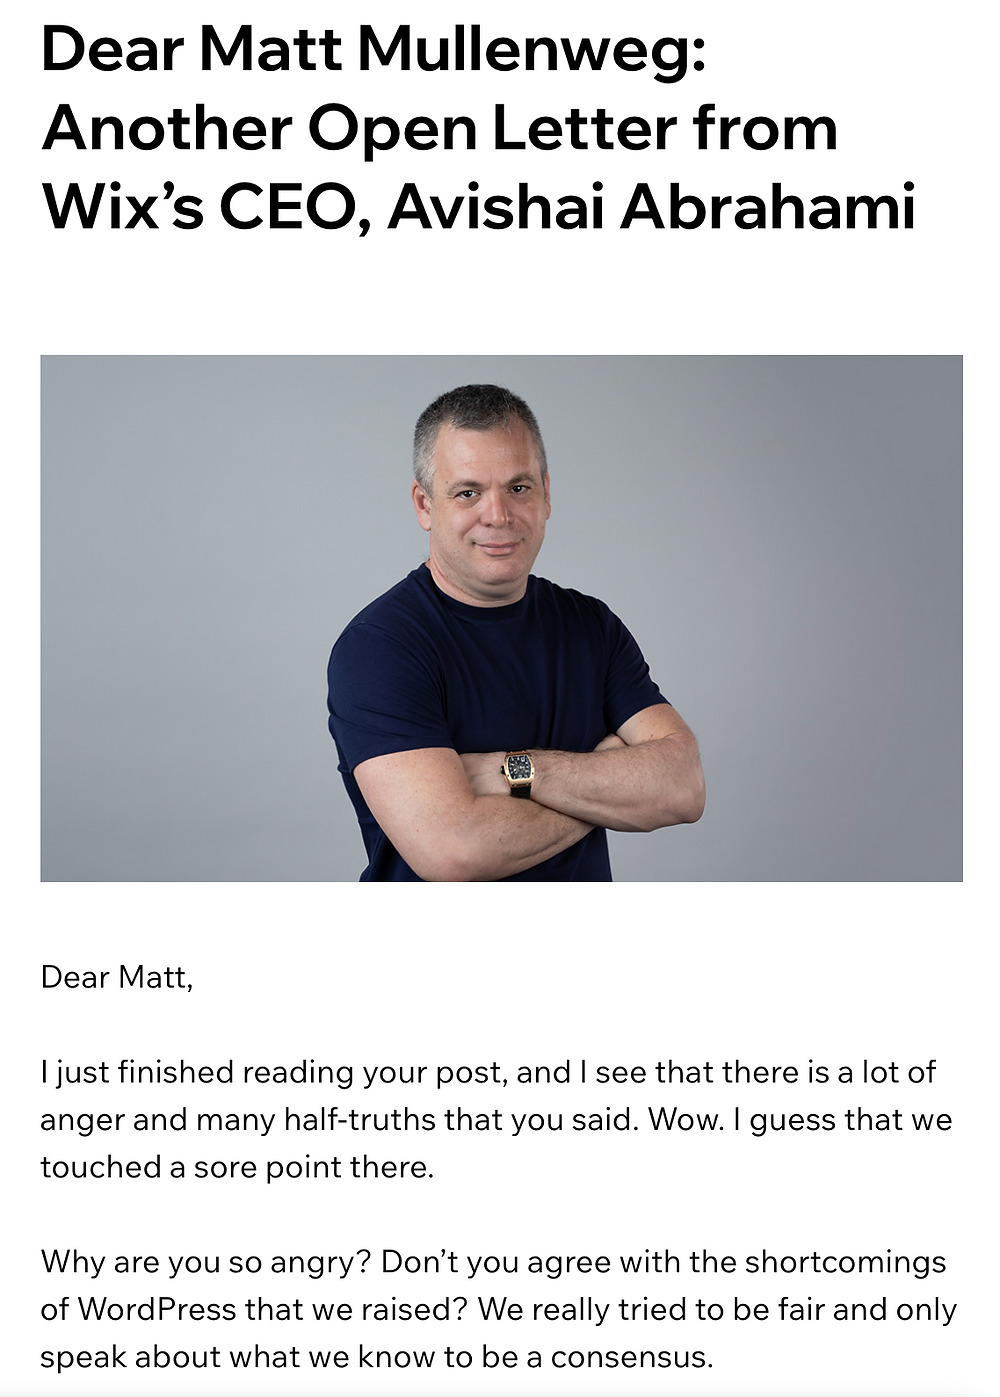 Wixs New Ads - Letter from Wix's CEO to Wordpress's Creator Matt Mullenweg